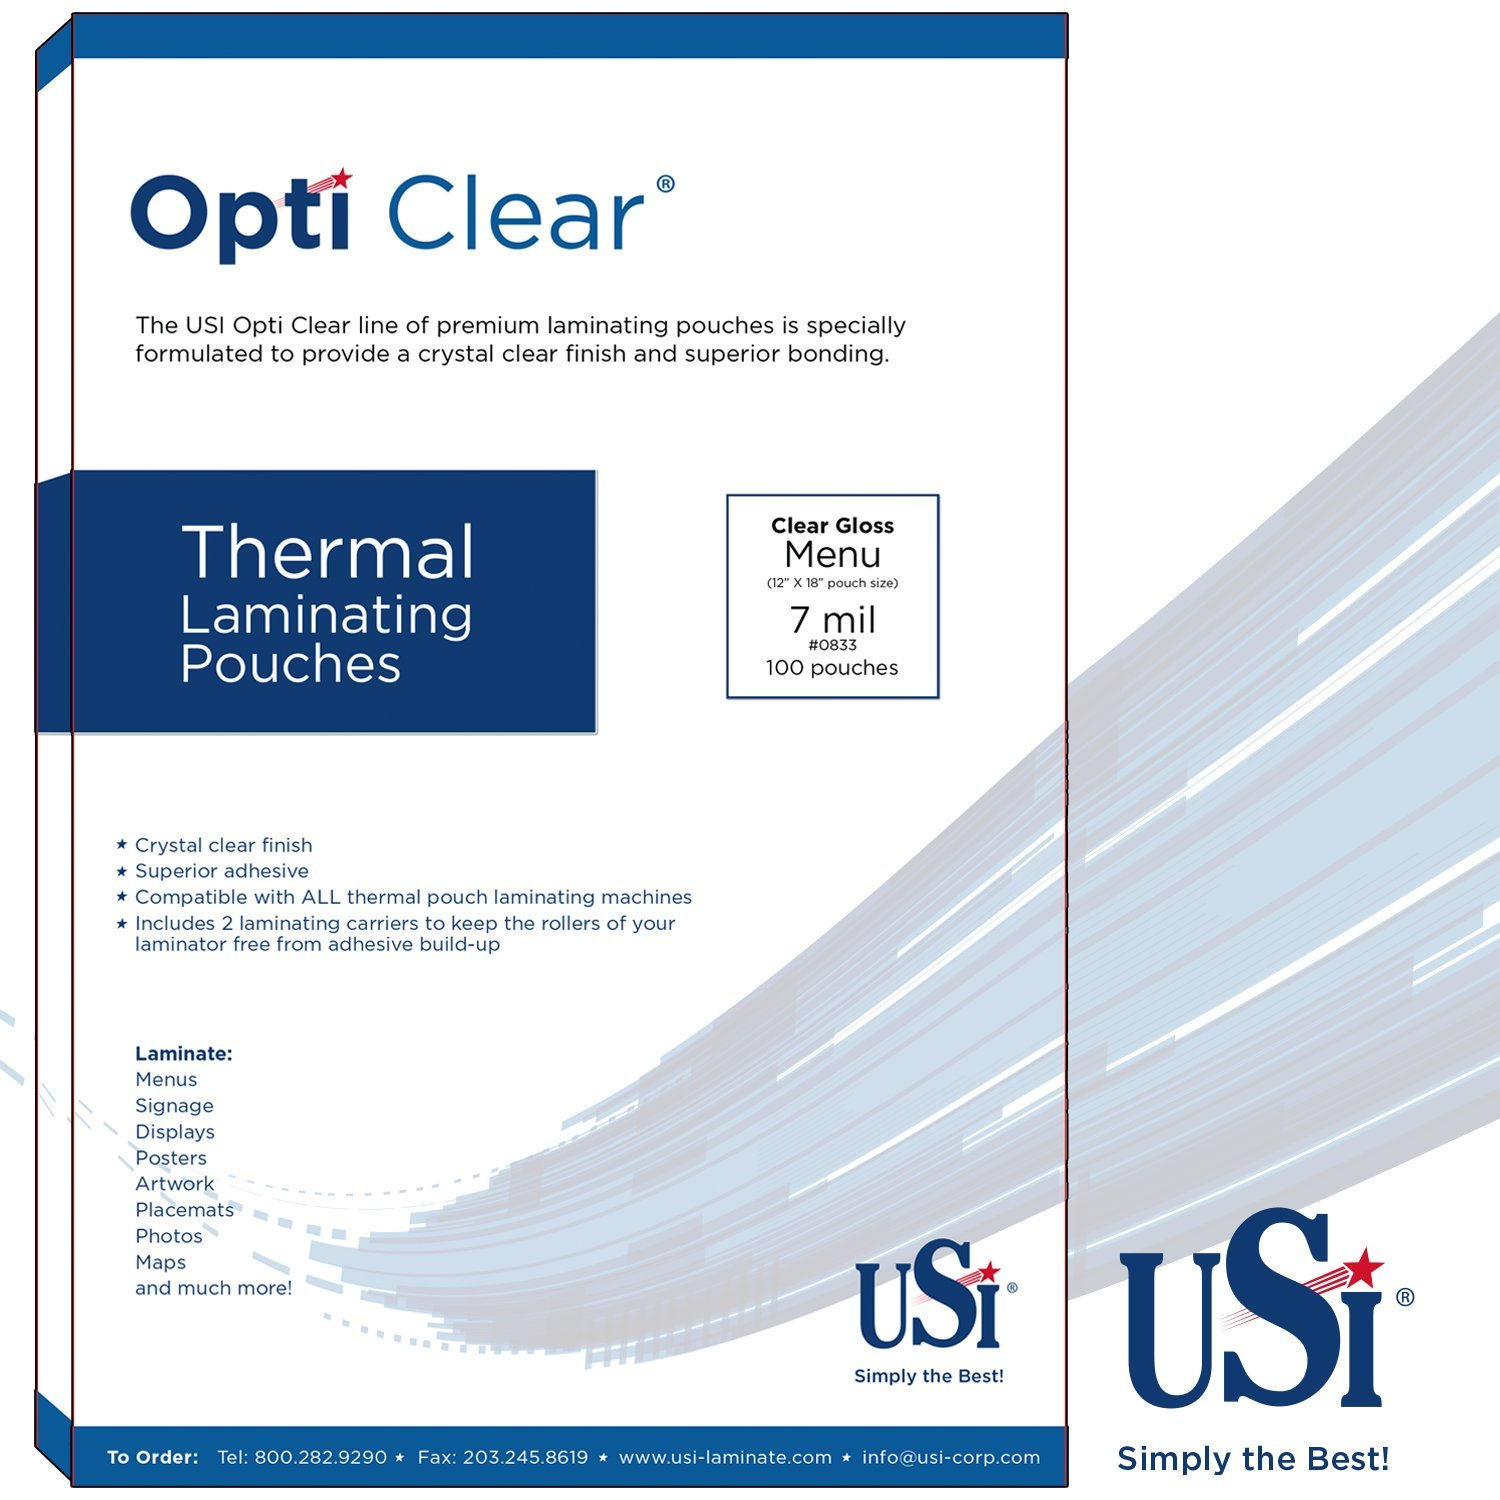 USI Opti Clear PREMIUM Thermal (Hot) Laminating Pouches / Sheets, Menu Size, 7 Mil, 12 x 18 Inches, Clear Gloss, Pack of 200